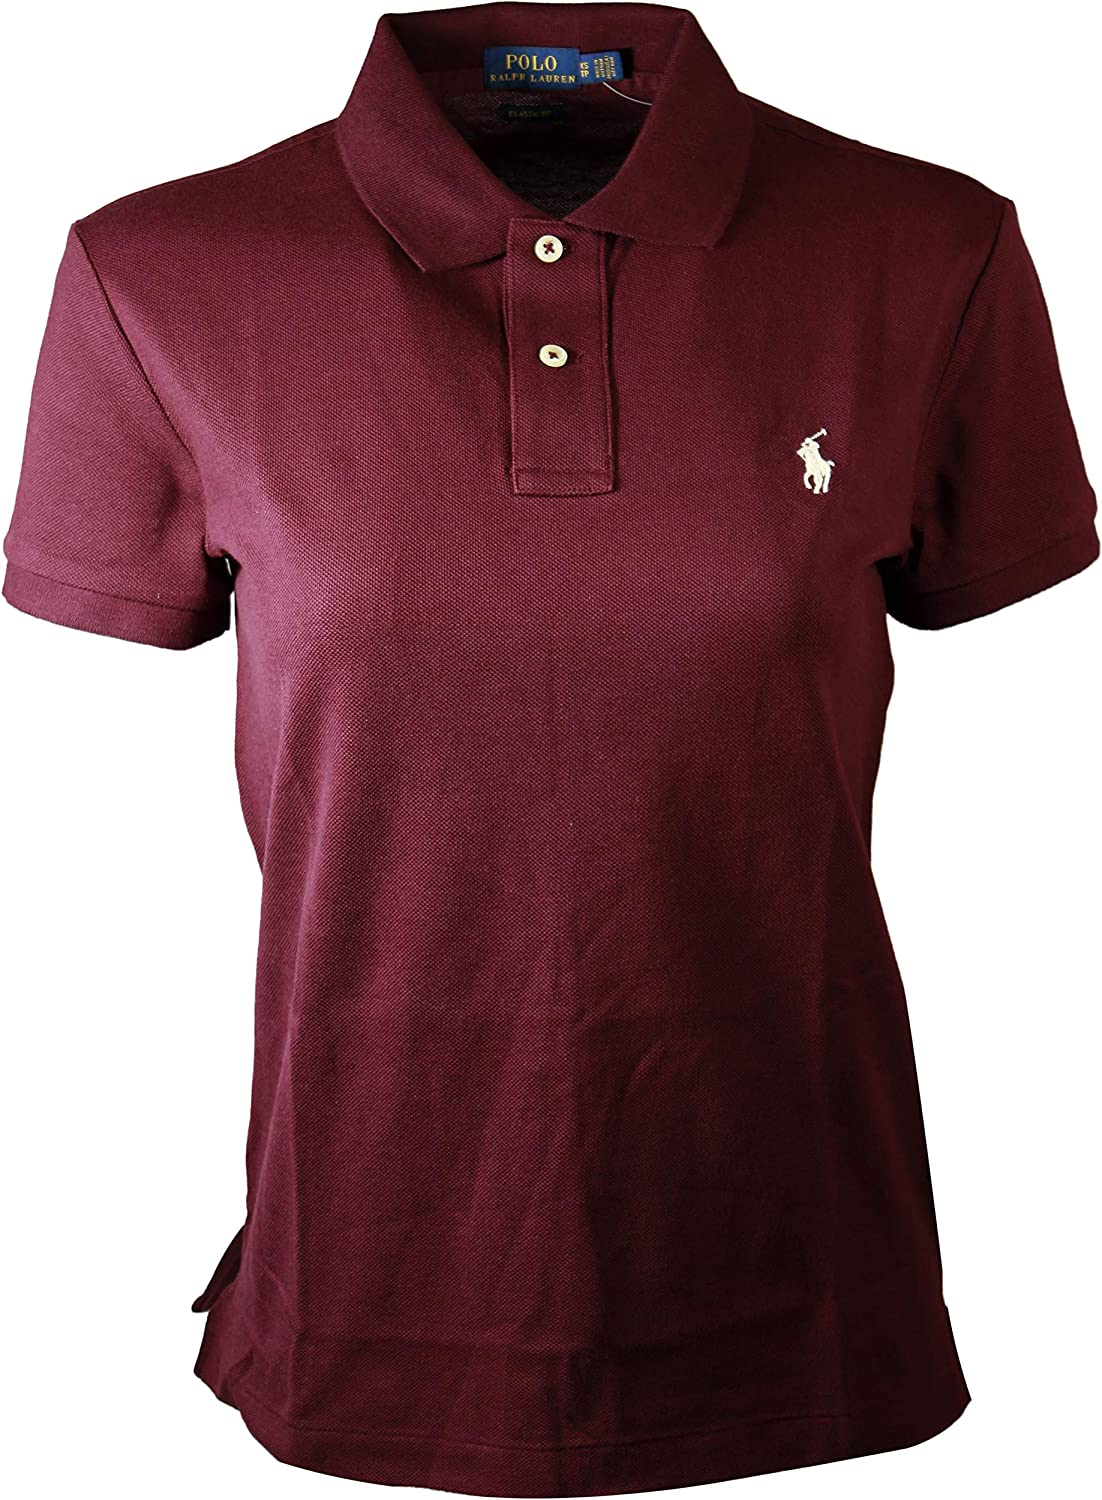 RALPH LAUREN Polo Womens Classic Fit Mesh Polo Shirt (X-Small, Red Wine)